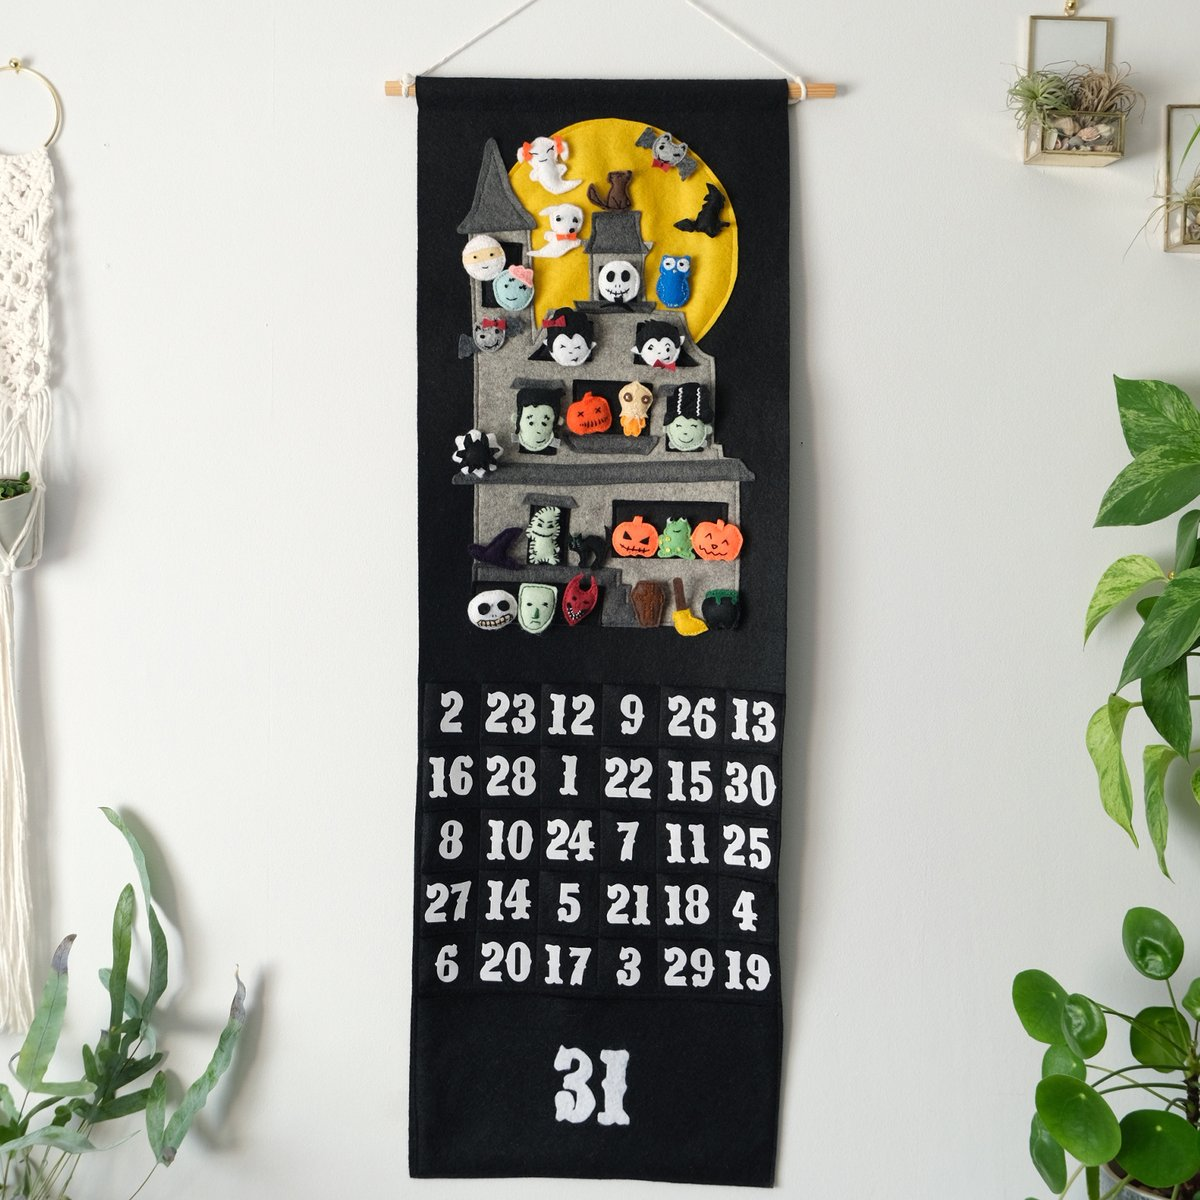 Check out this incredible countdown calendar by Natasha! The felt characters are even velcro-backed, so they can be rearranged to create fun Halloween scenes.   Enter our October Make of the Month Competition:  https://t.co/RjwMFtf4zF  #OctMotm20 #Competition #Hobbycraft https://t.co/UA6iugnumC